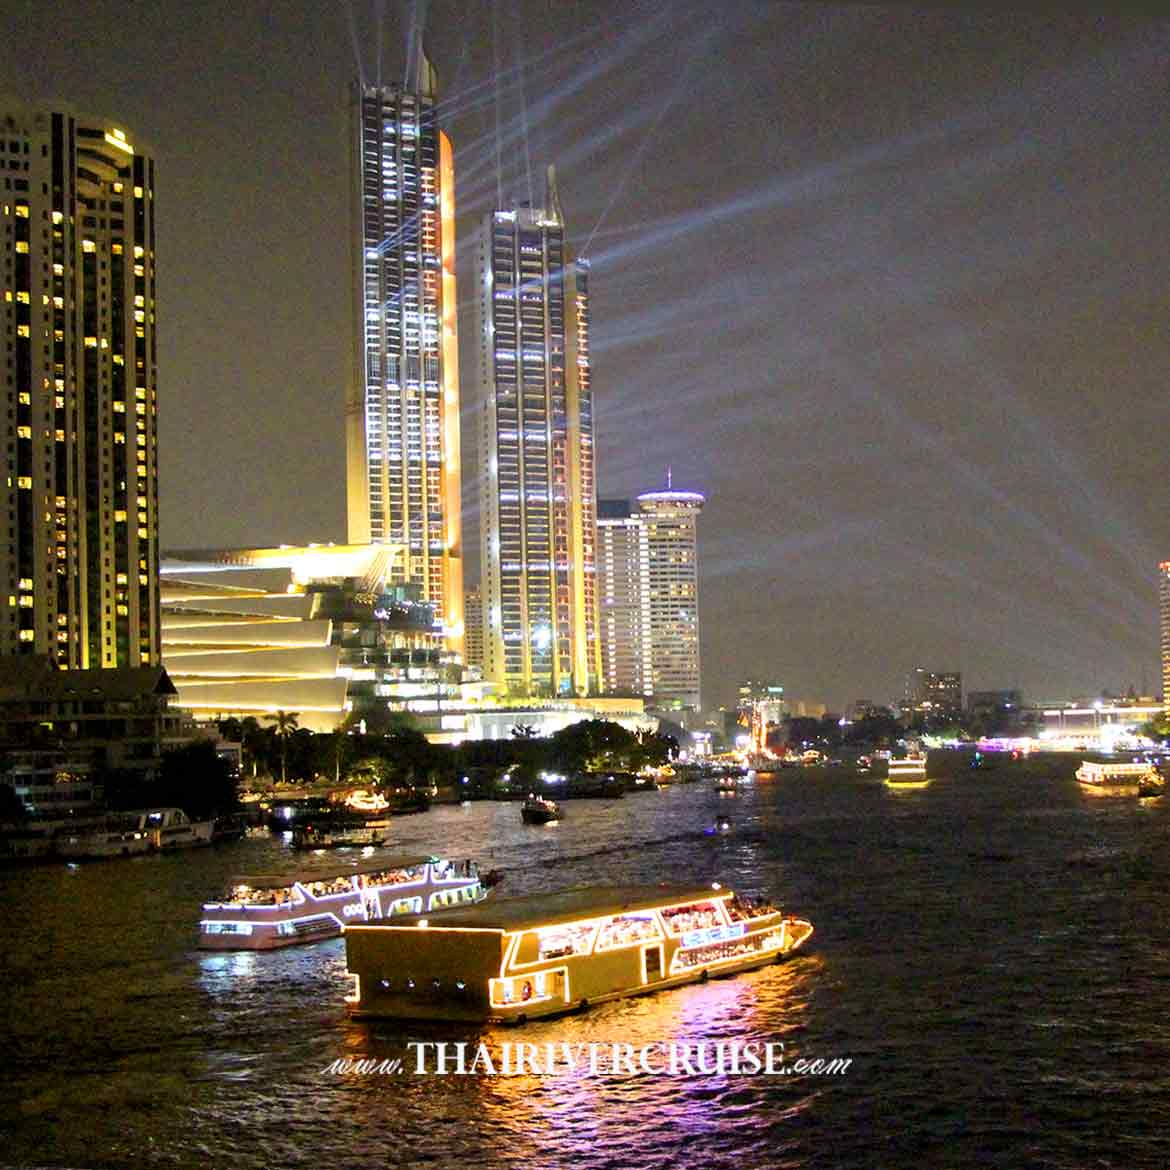 Bangkok New Year EVE 2020 River Cruises alongthe Chao Phraya River, Come & enjoy to see on Countdown night on Tuesday 31, December 2019